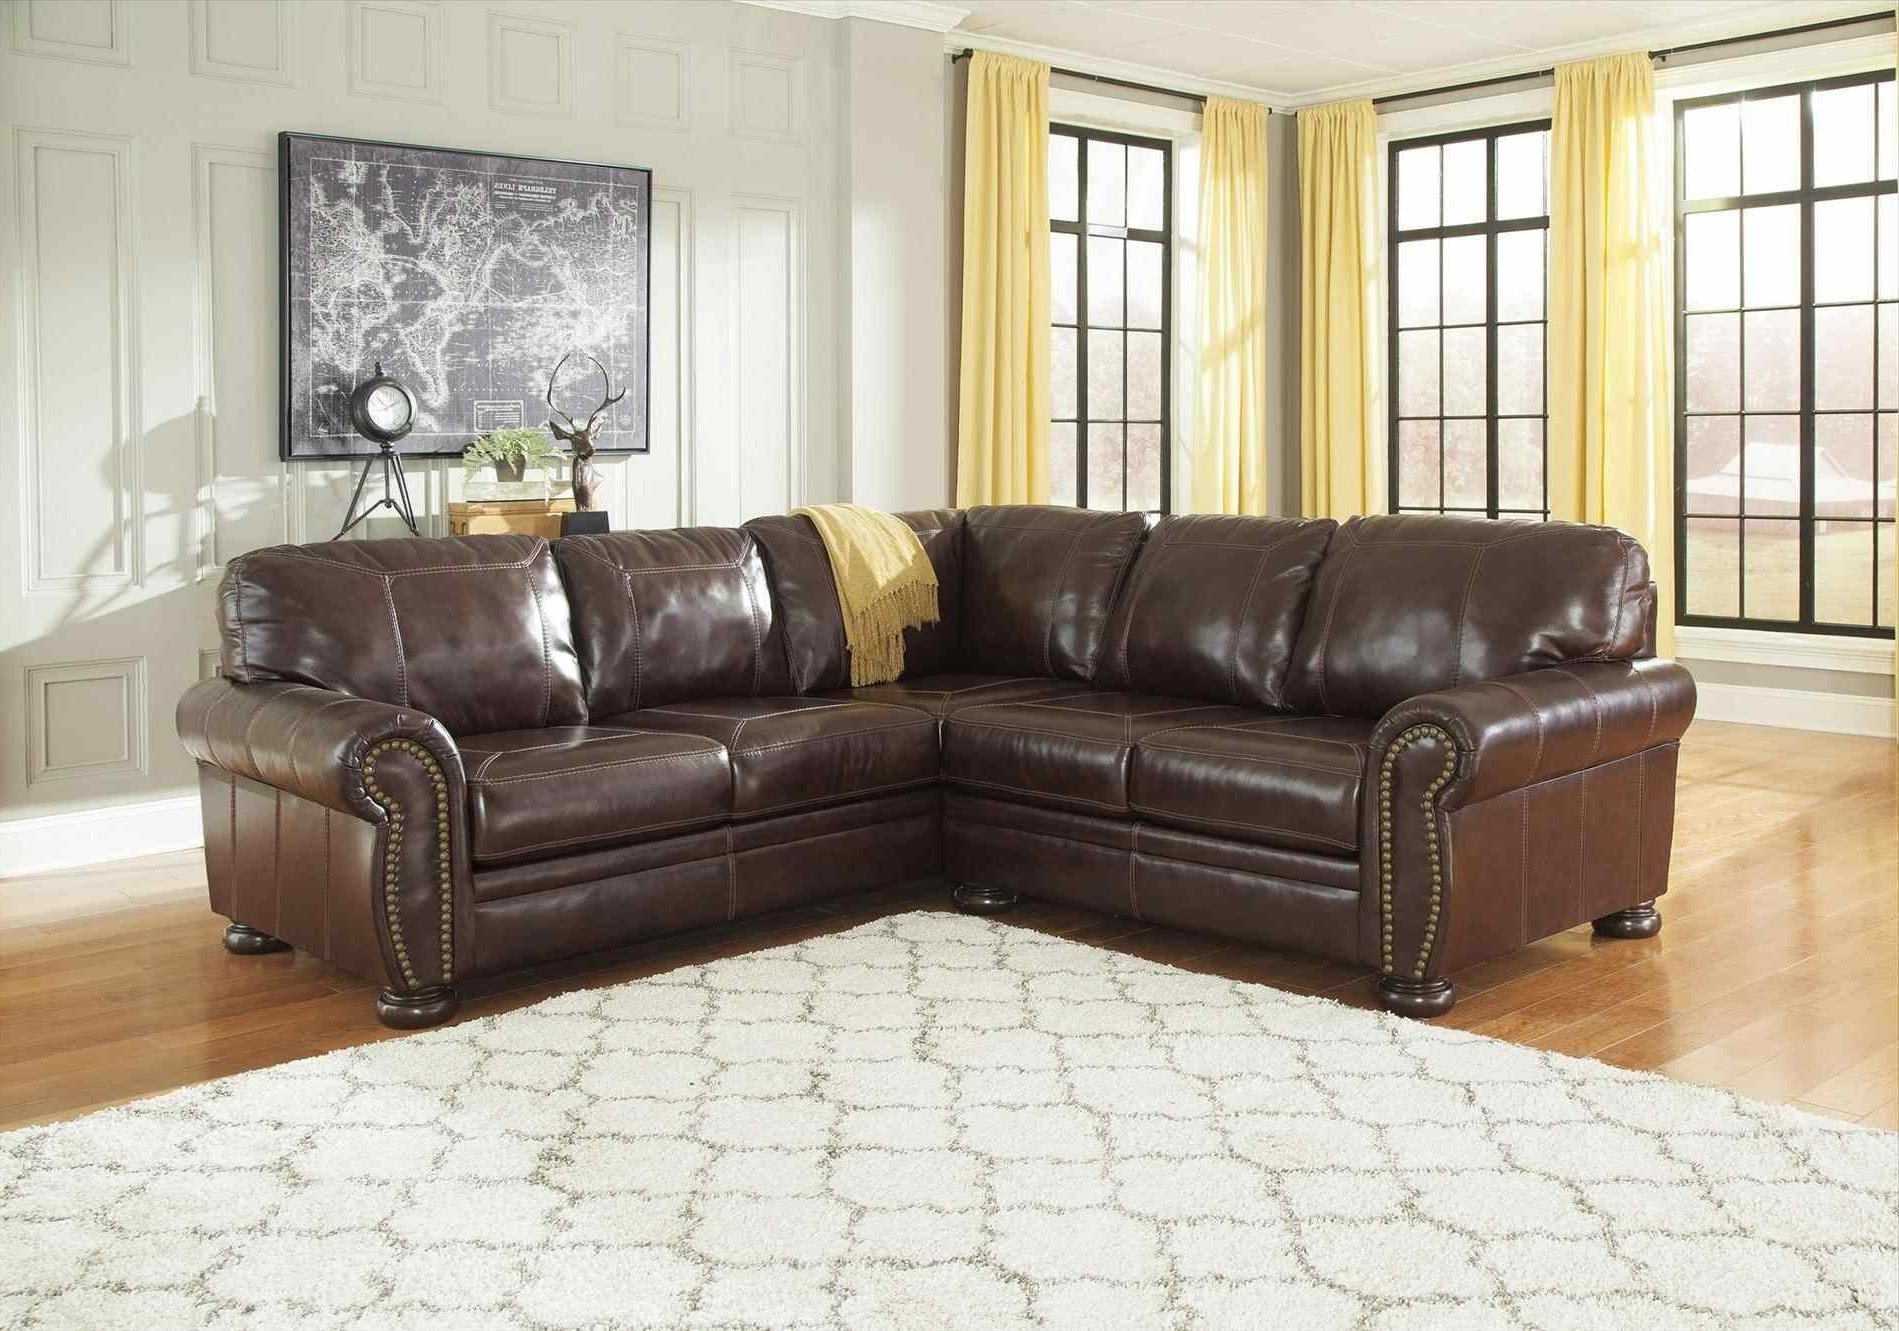 Latest Couch : Genuine Leather Couches Kramfors Lshape Sectional Youtube Regarding Nj Sectional Sofas (View 3 of 15)